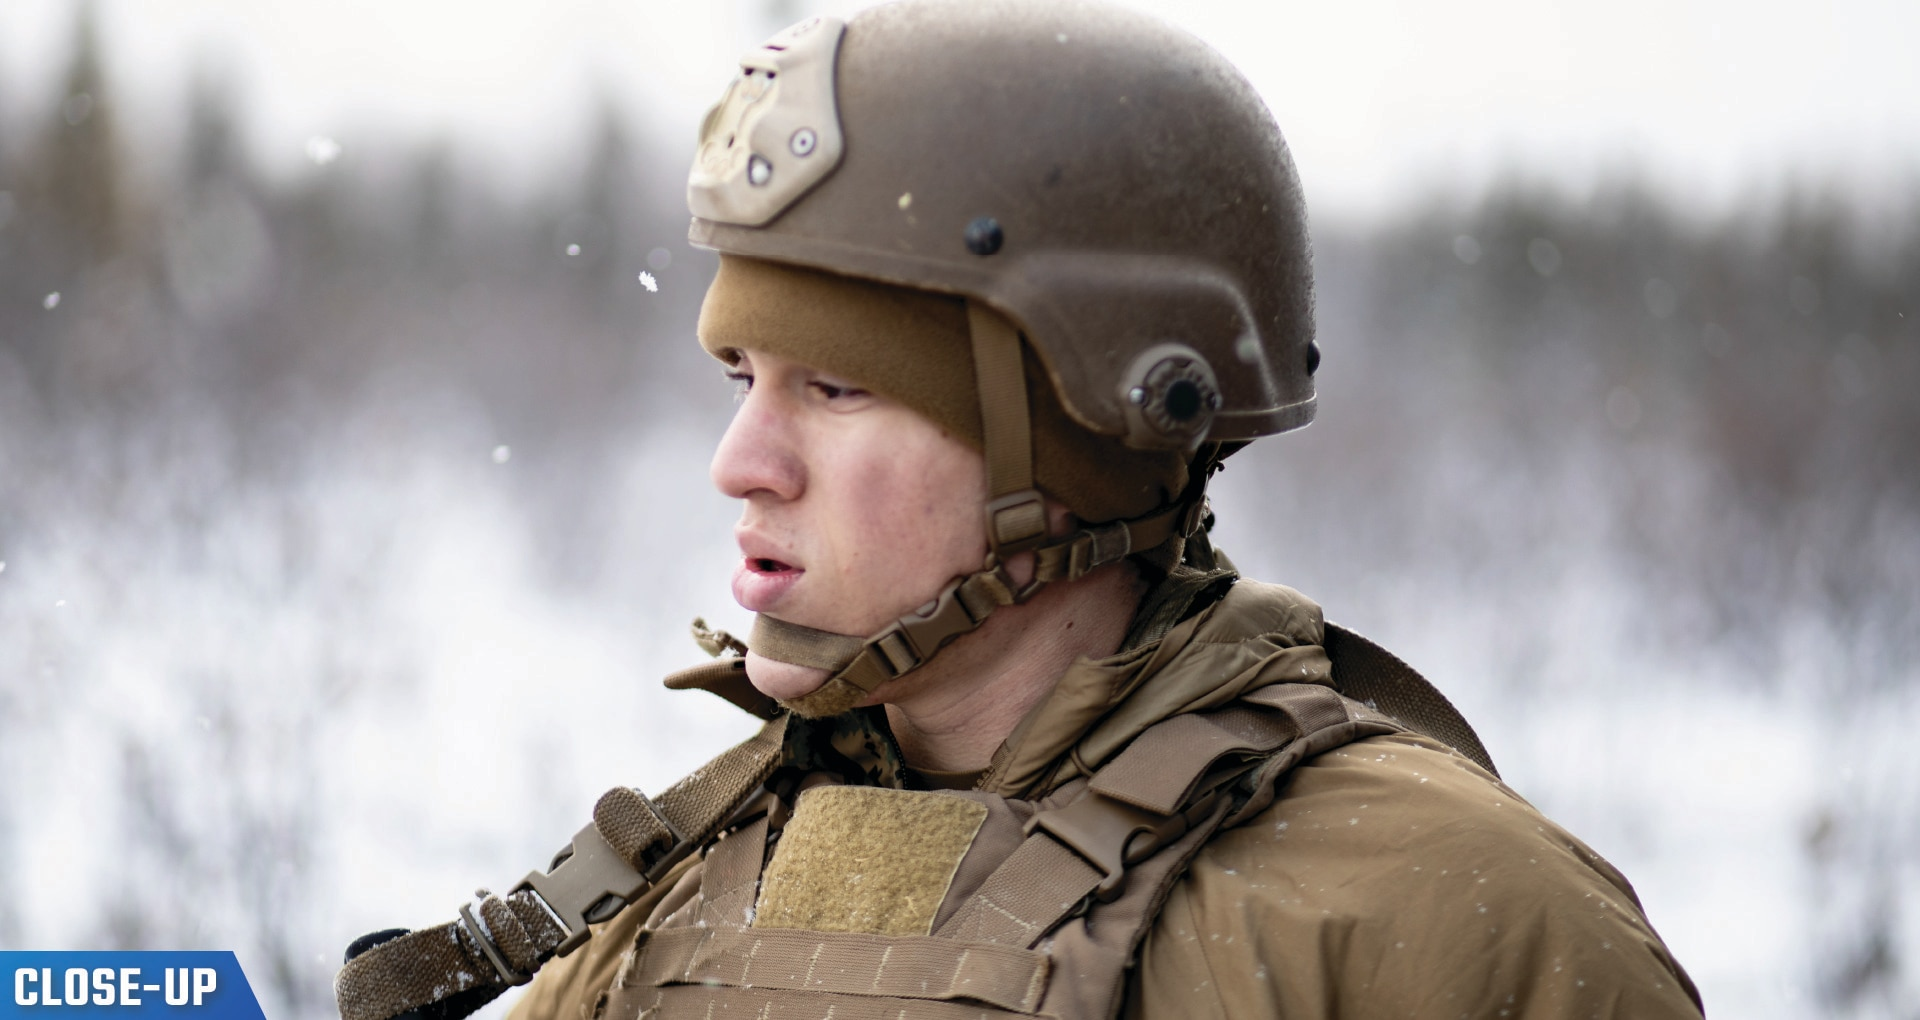 U.S. Marine Corps Lance Cpl. in gear standing in snow.